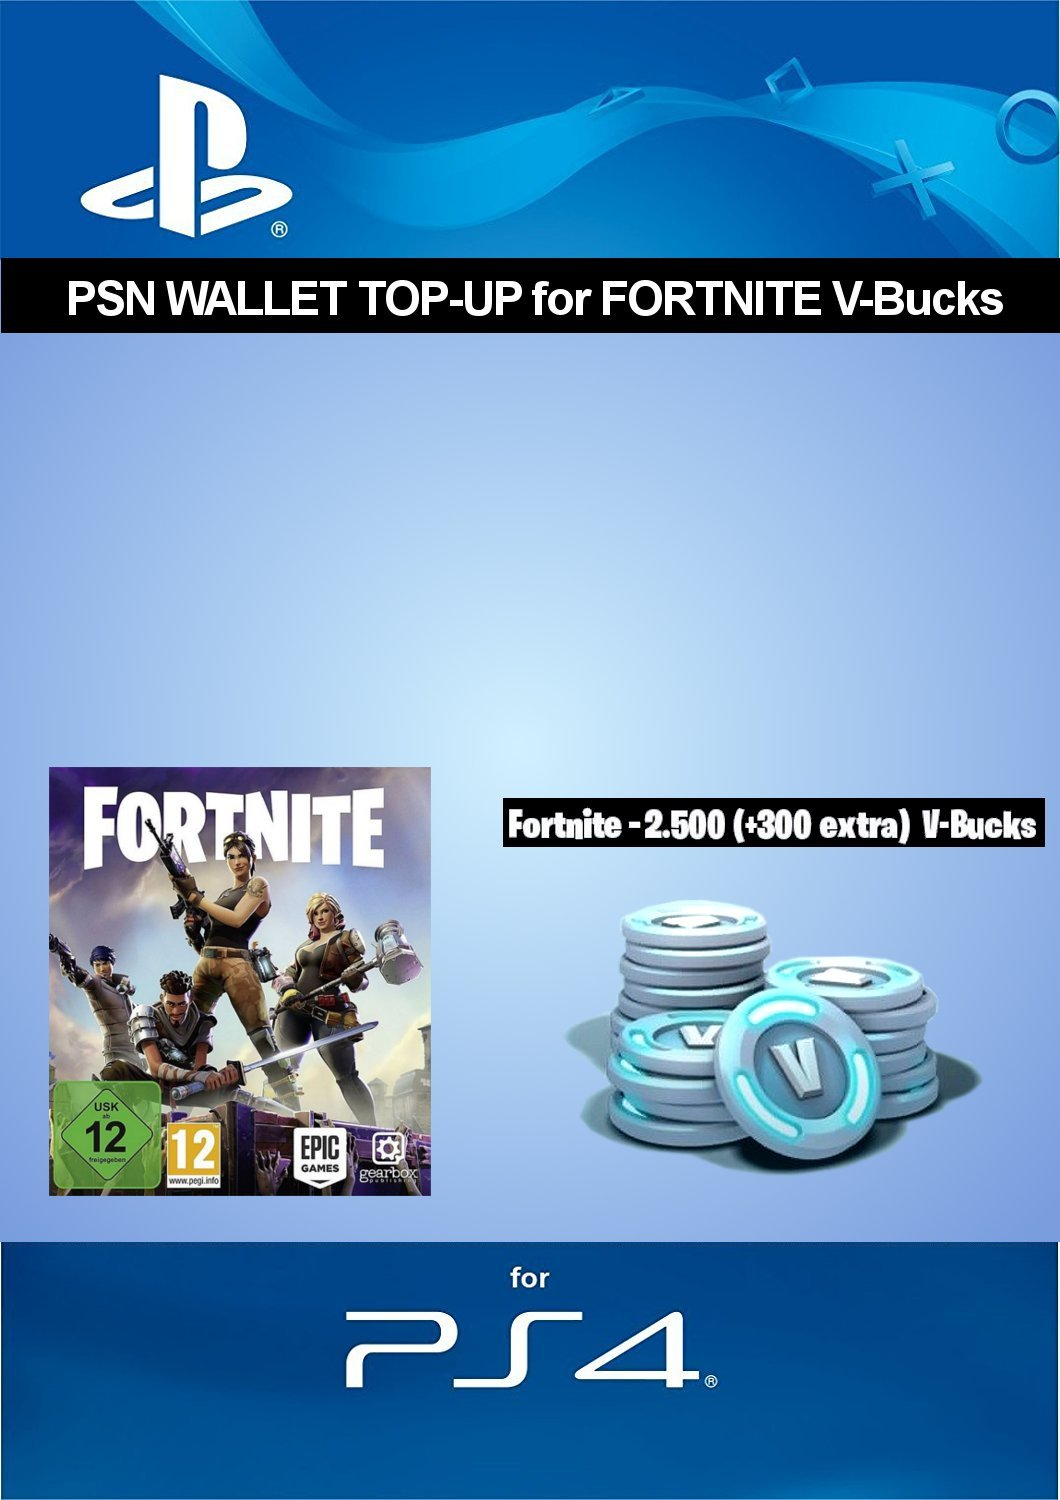 UK Daily Deals: PS4/Xbox One Fortnite 2800 V-Bucks for £20